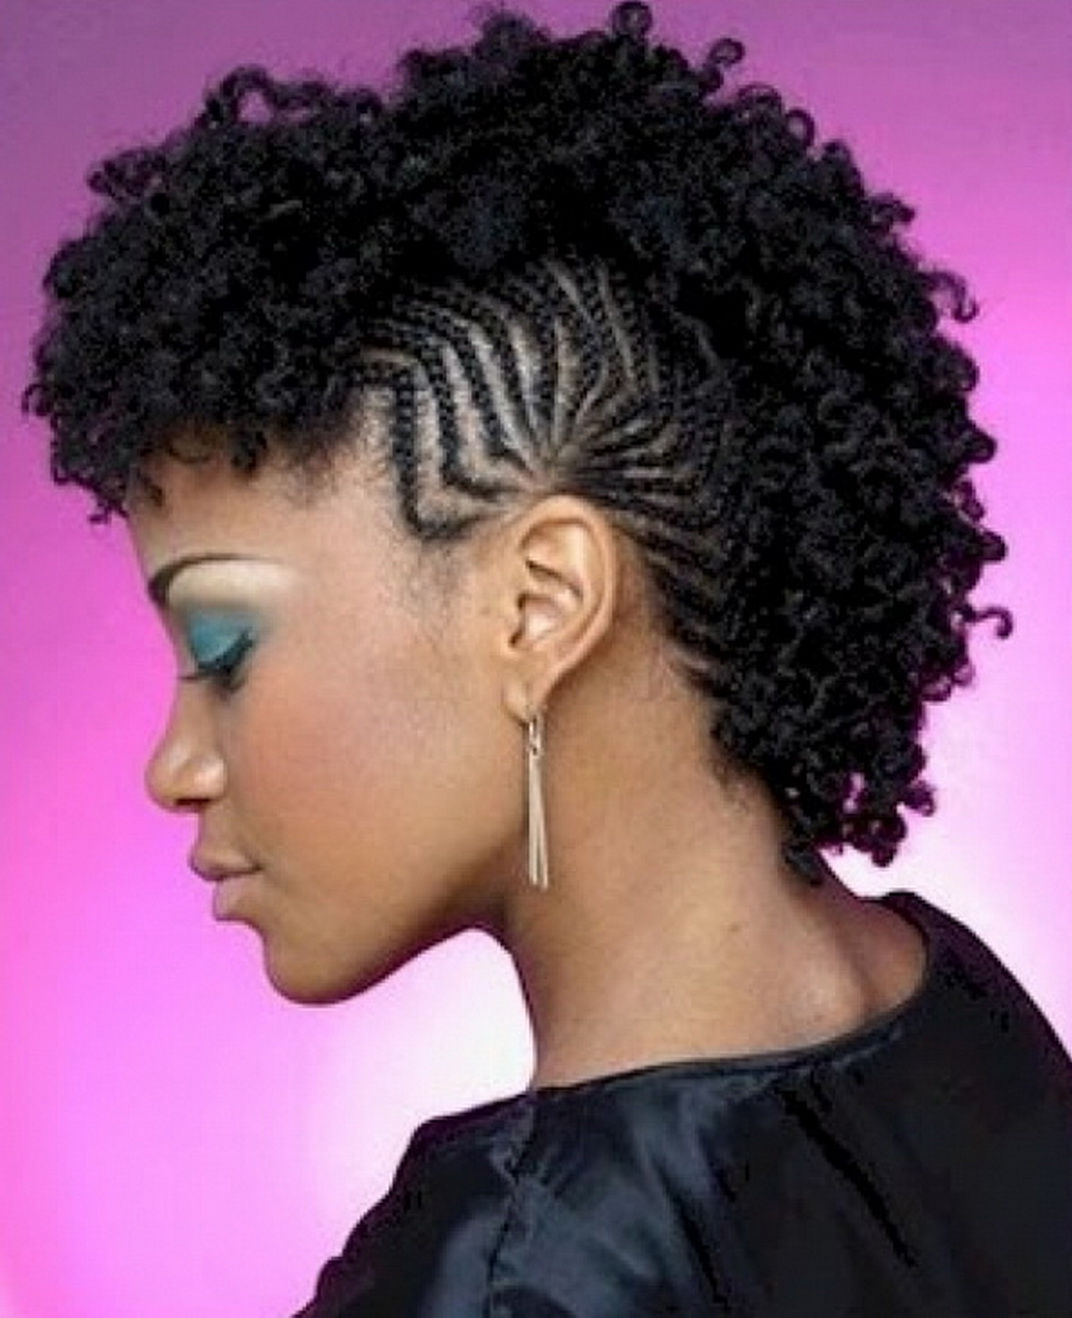 Black Girl Mohawk Hairstyle – Hairstyle For Women & Man Intended For Mohawk Short Hairstyles For Black Women (View 7 of 25)